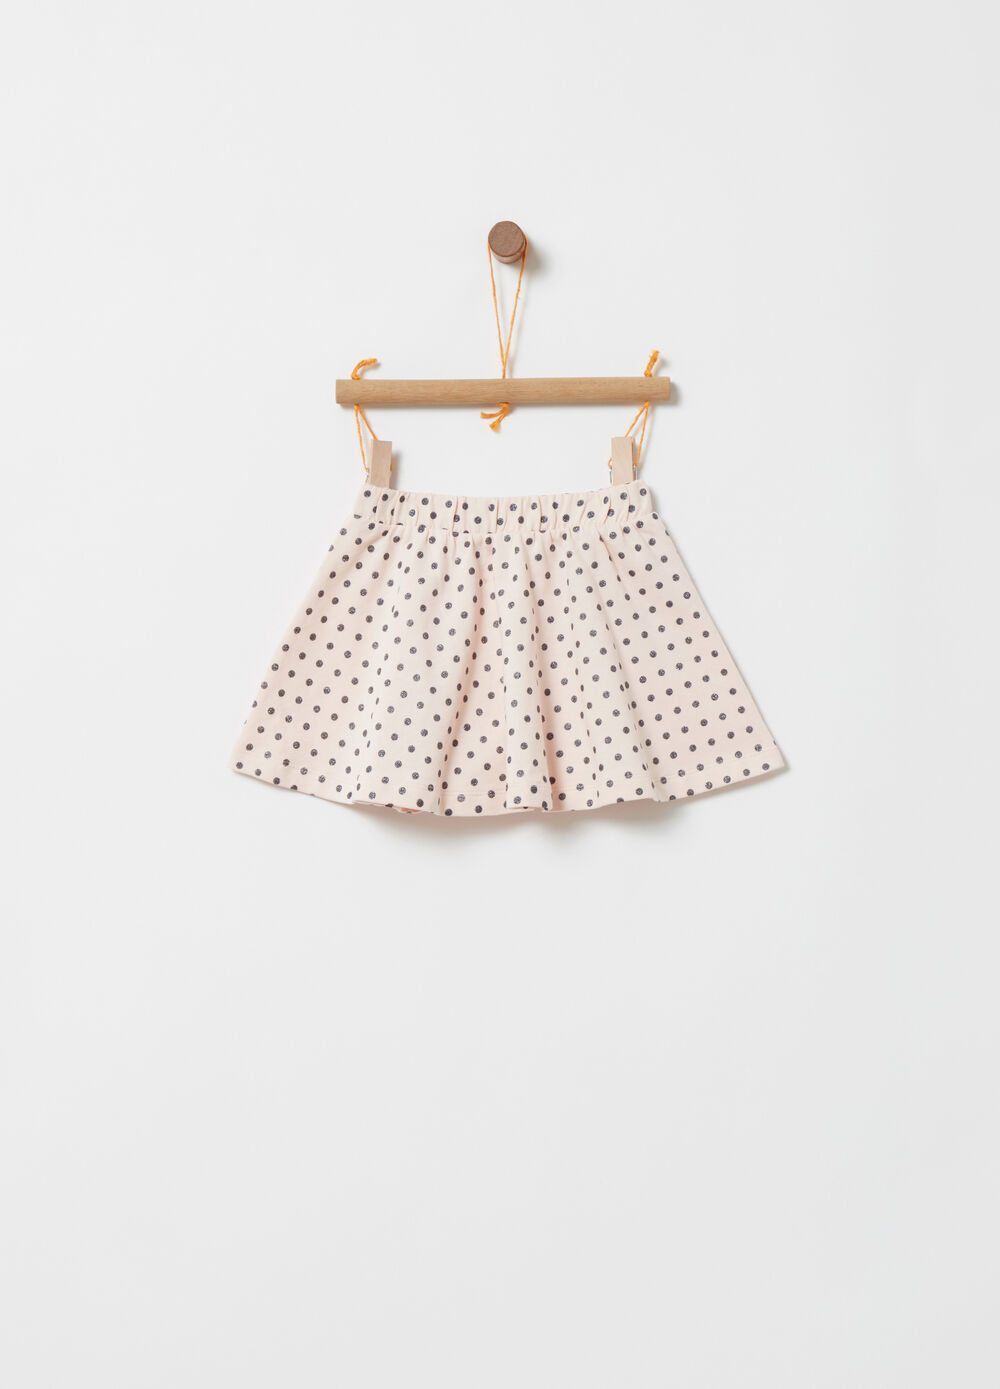 Polka dot skirt in 100% cotton lightweight fleece